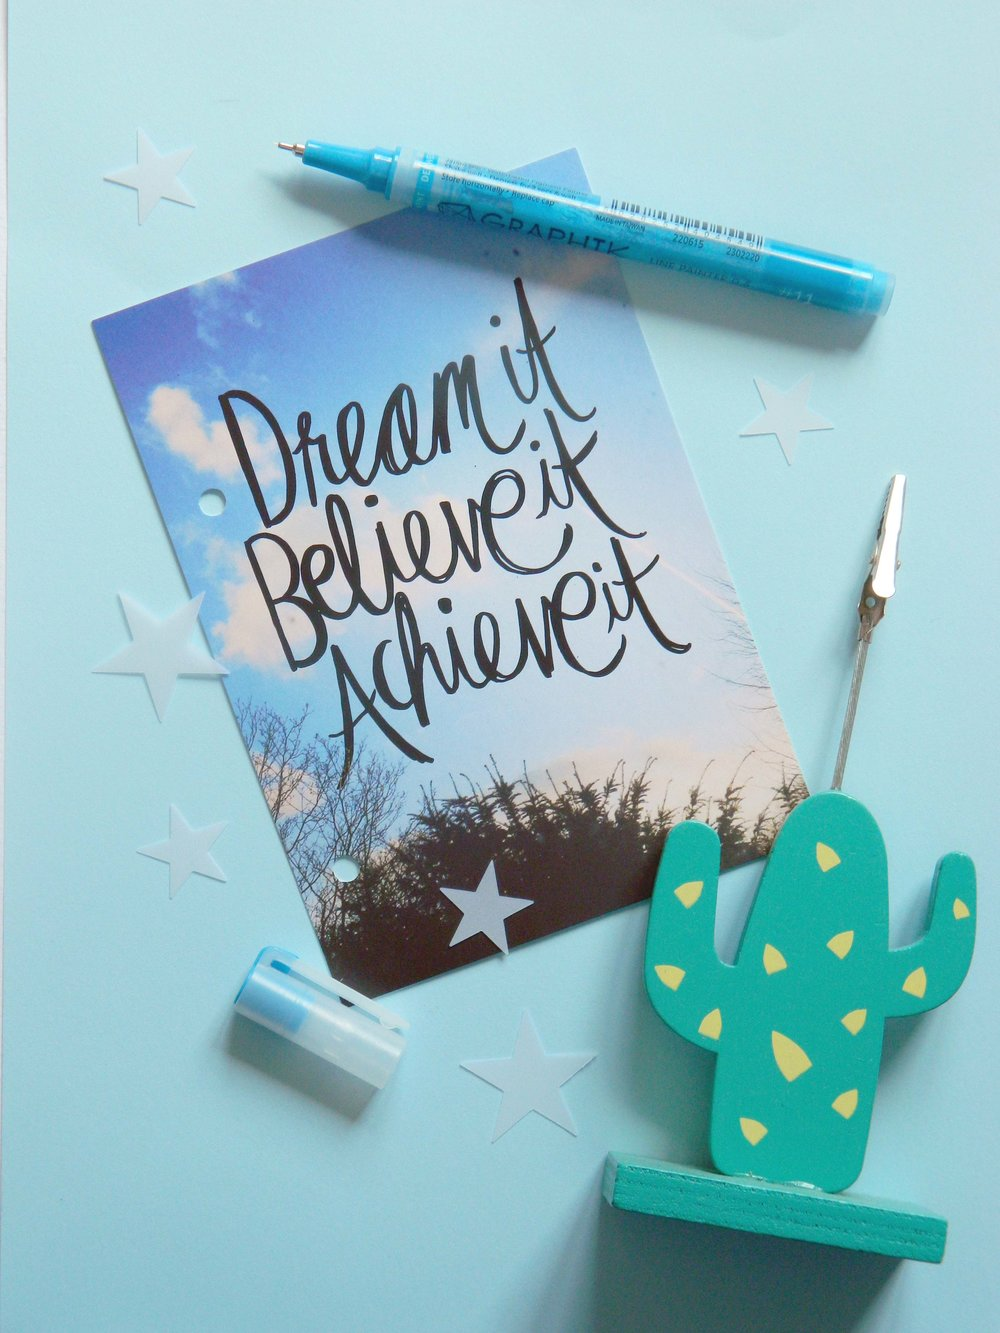 Dream It, Believe It, Achieve It postcard - Paperchase.